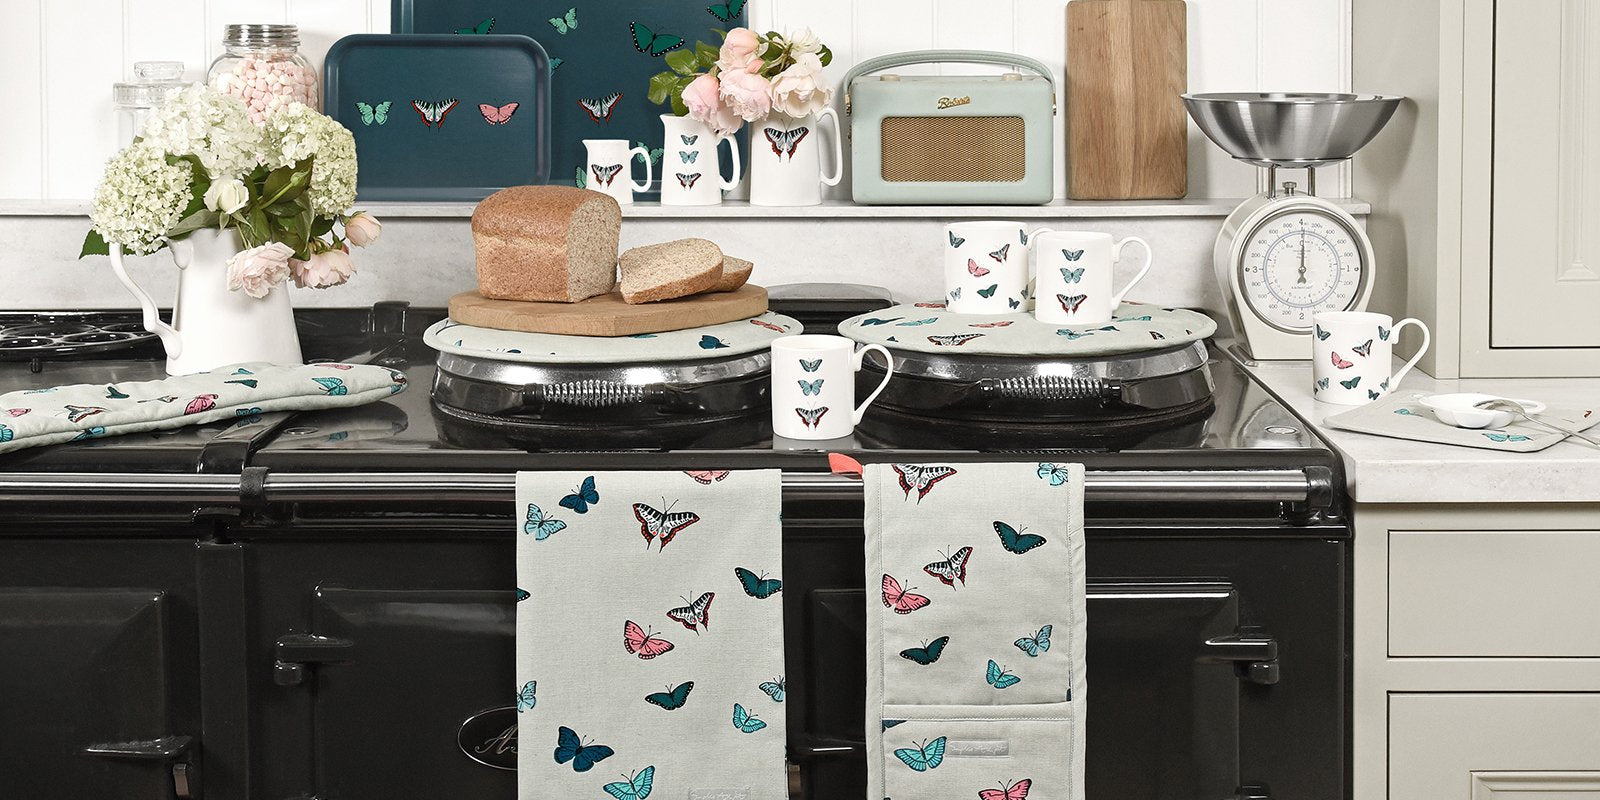 Butterflies range of home accessories by Sophie Allport